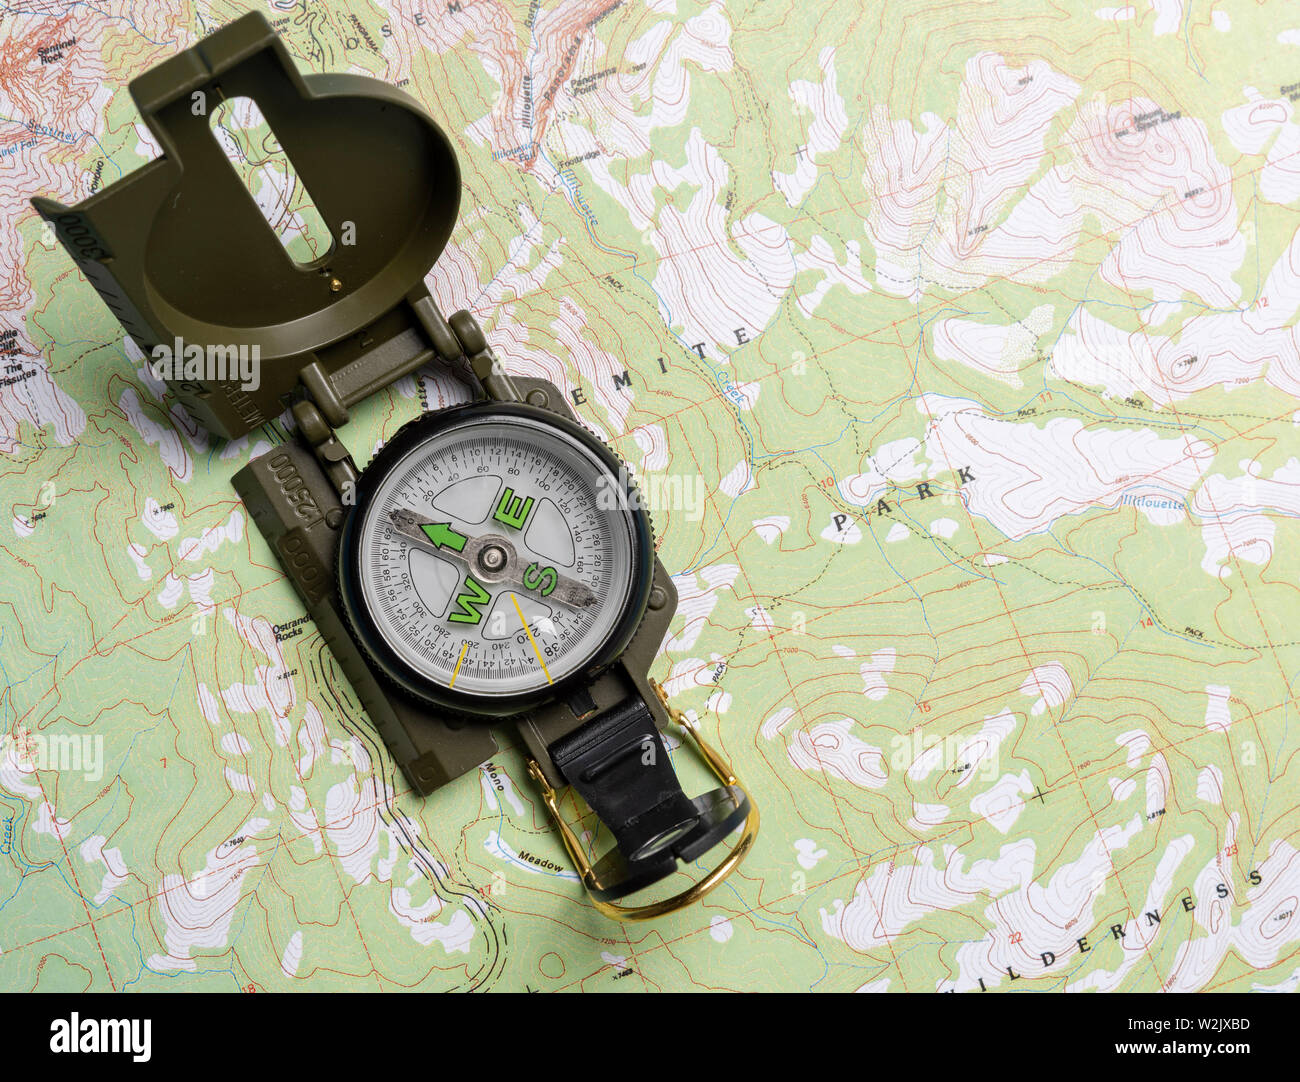 A compass on a map Stock Photo